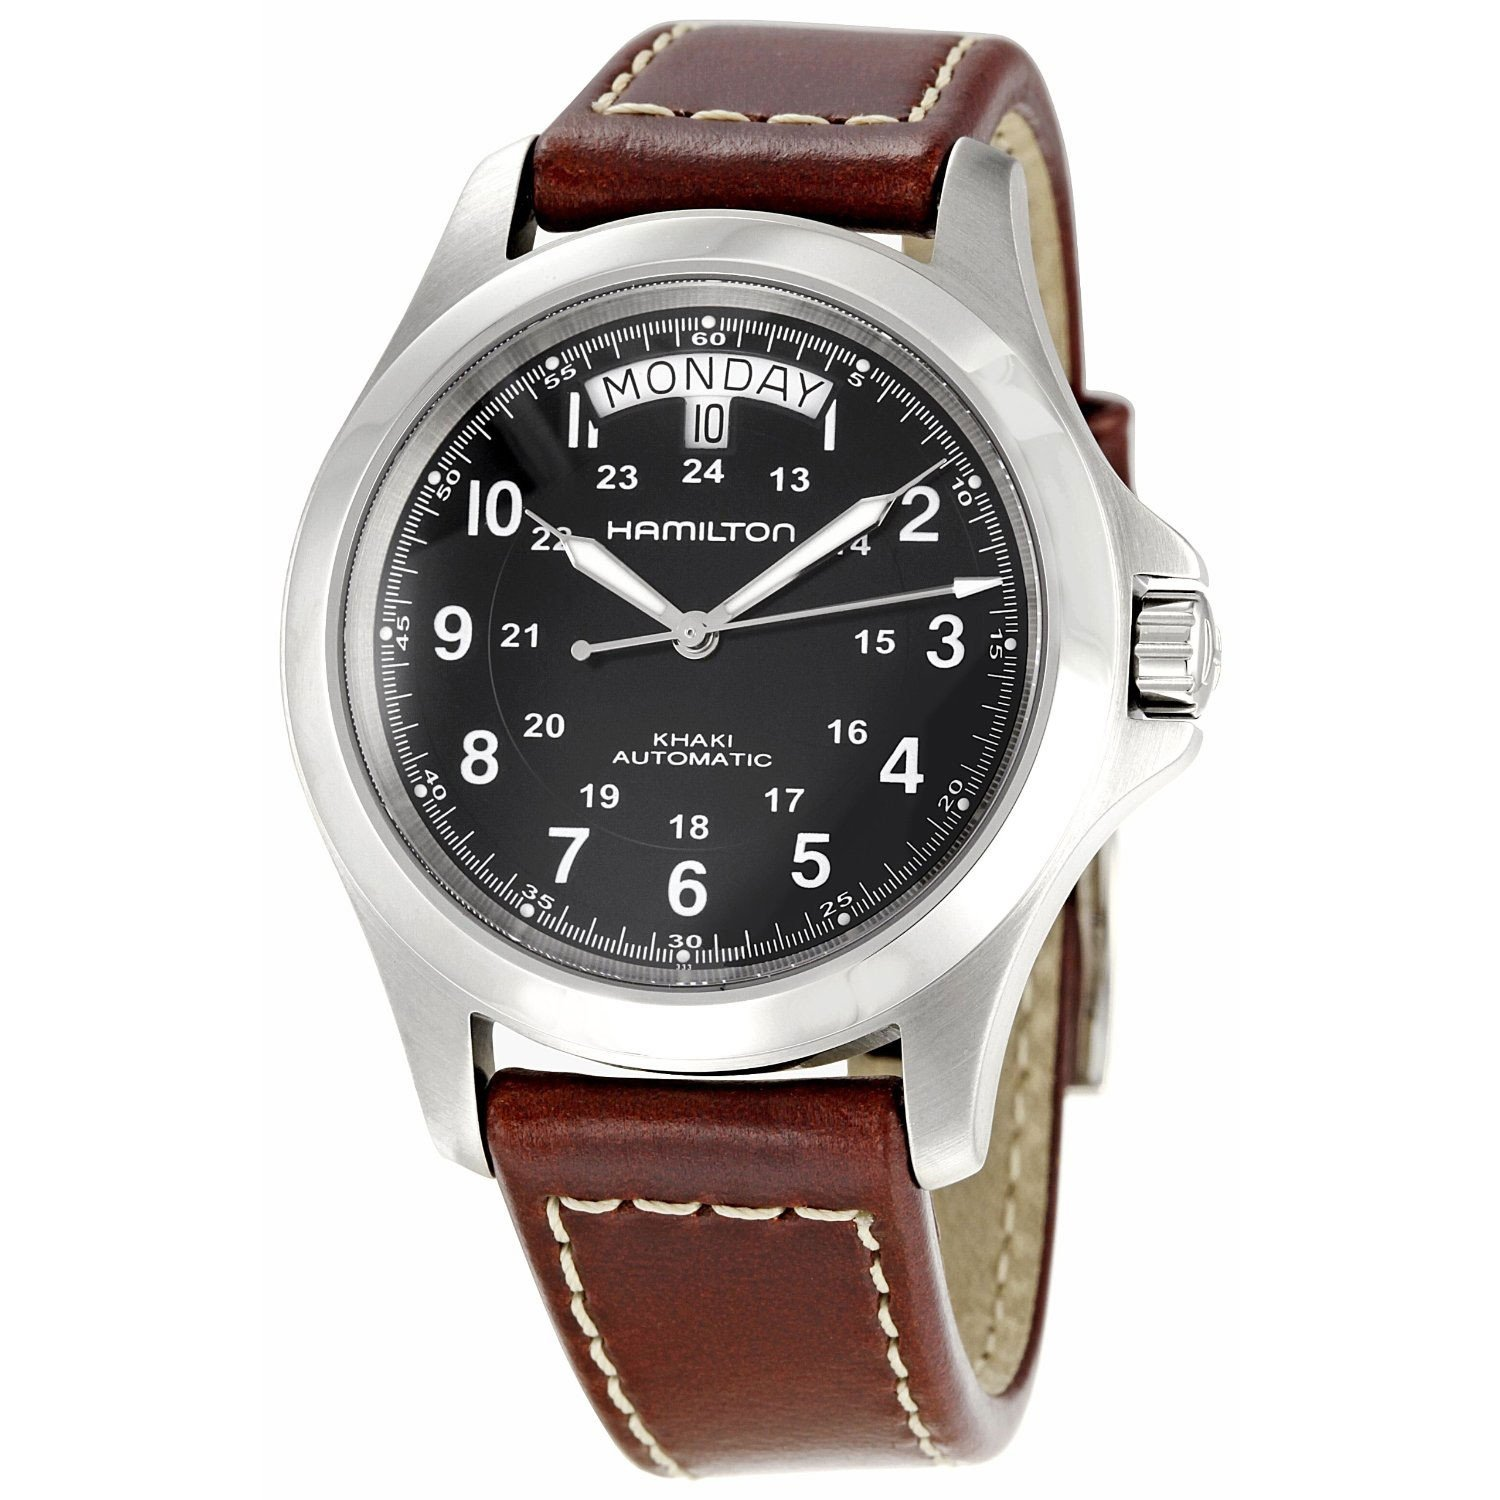 Hamilton Khaki King Series Men Automatic Watch with Black Dial Analogue Display and Brown Leather Strap H64455533